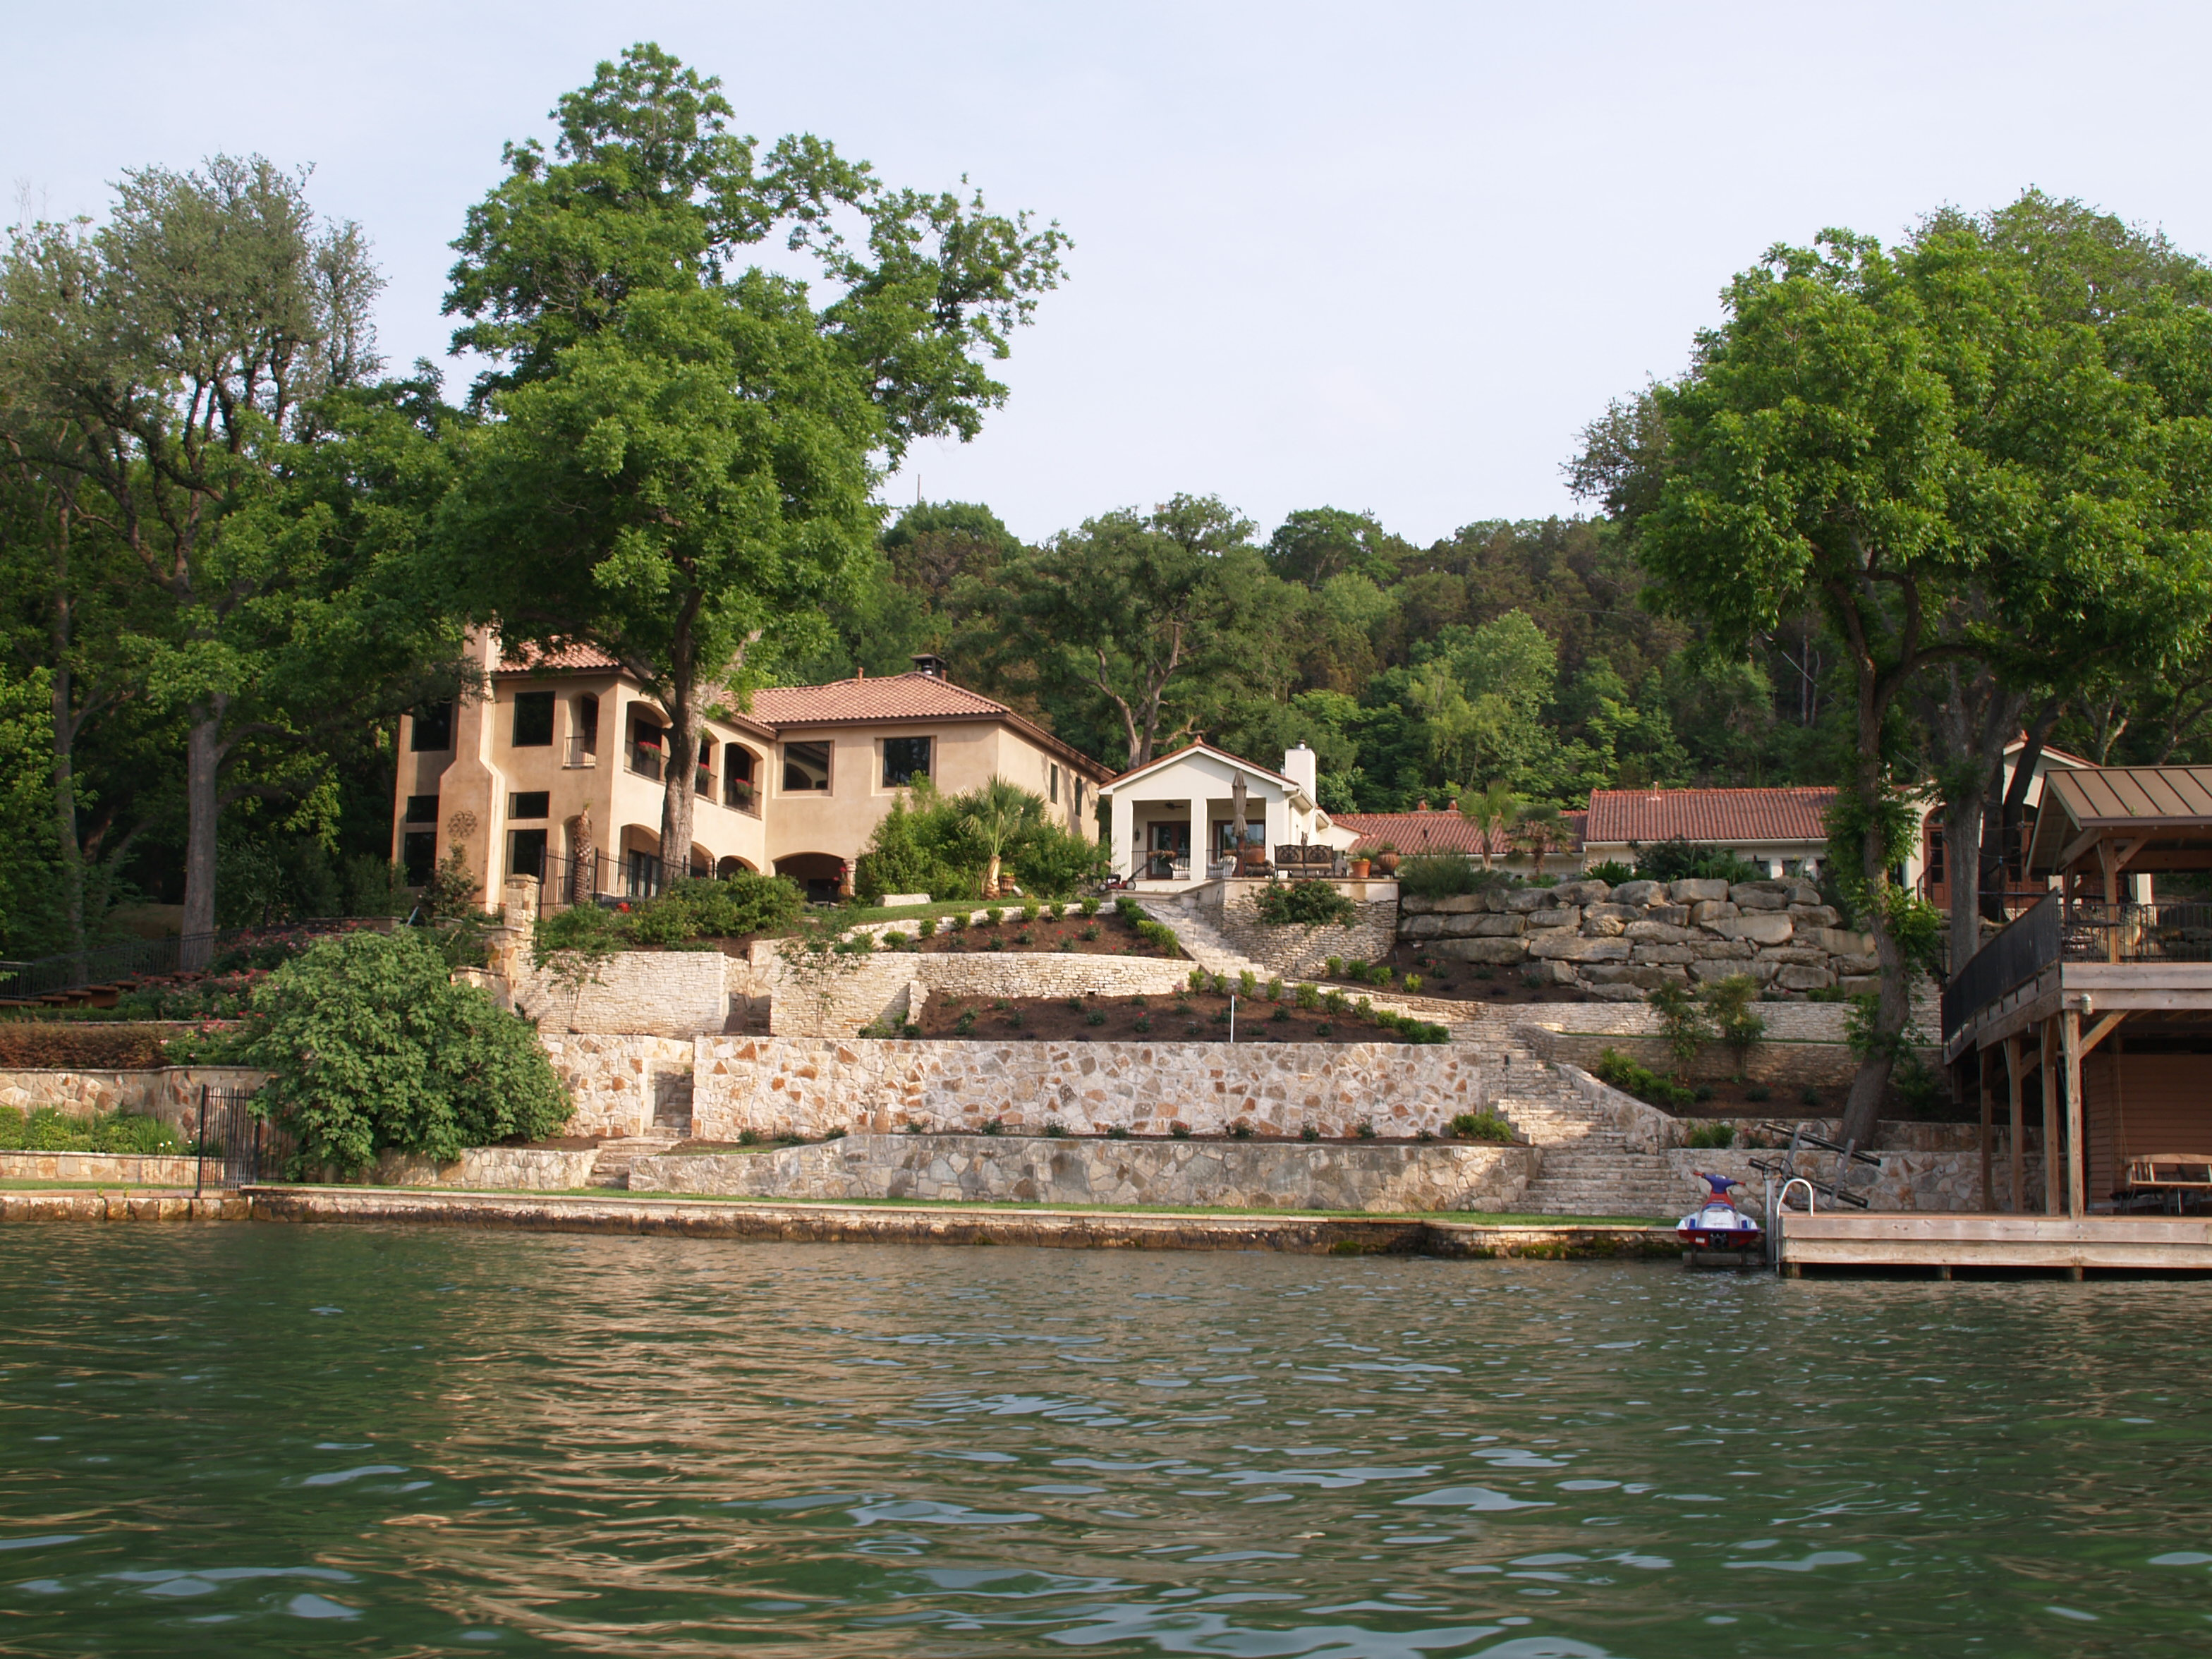 Regent property group announces redesigned lake austin for Austin house